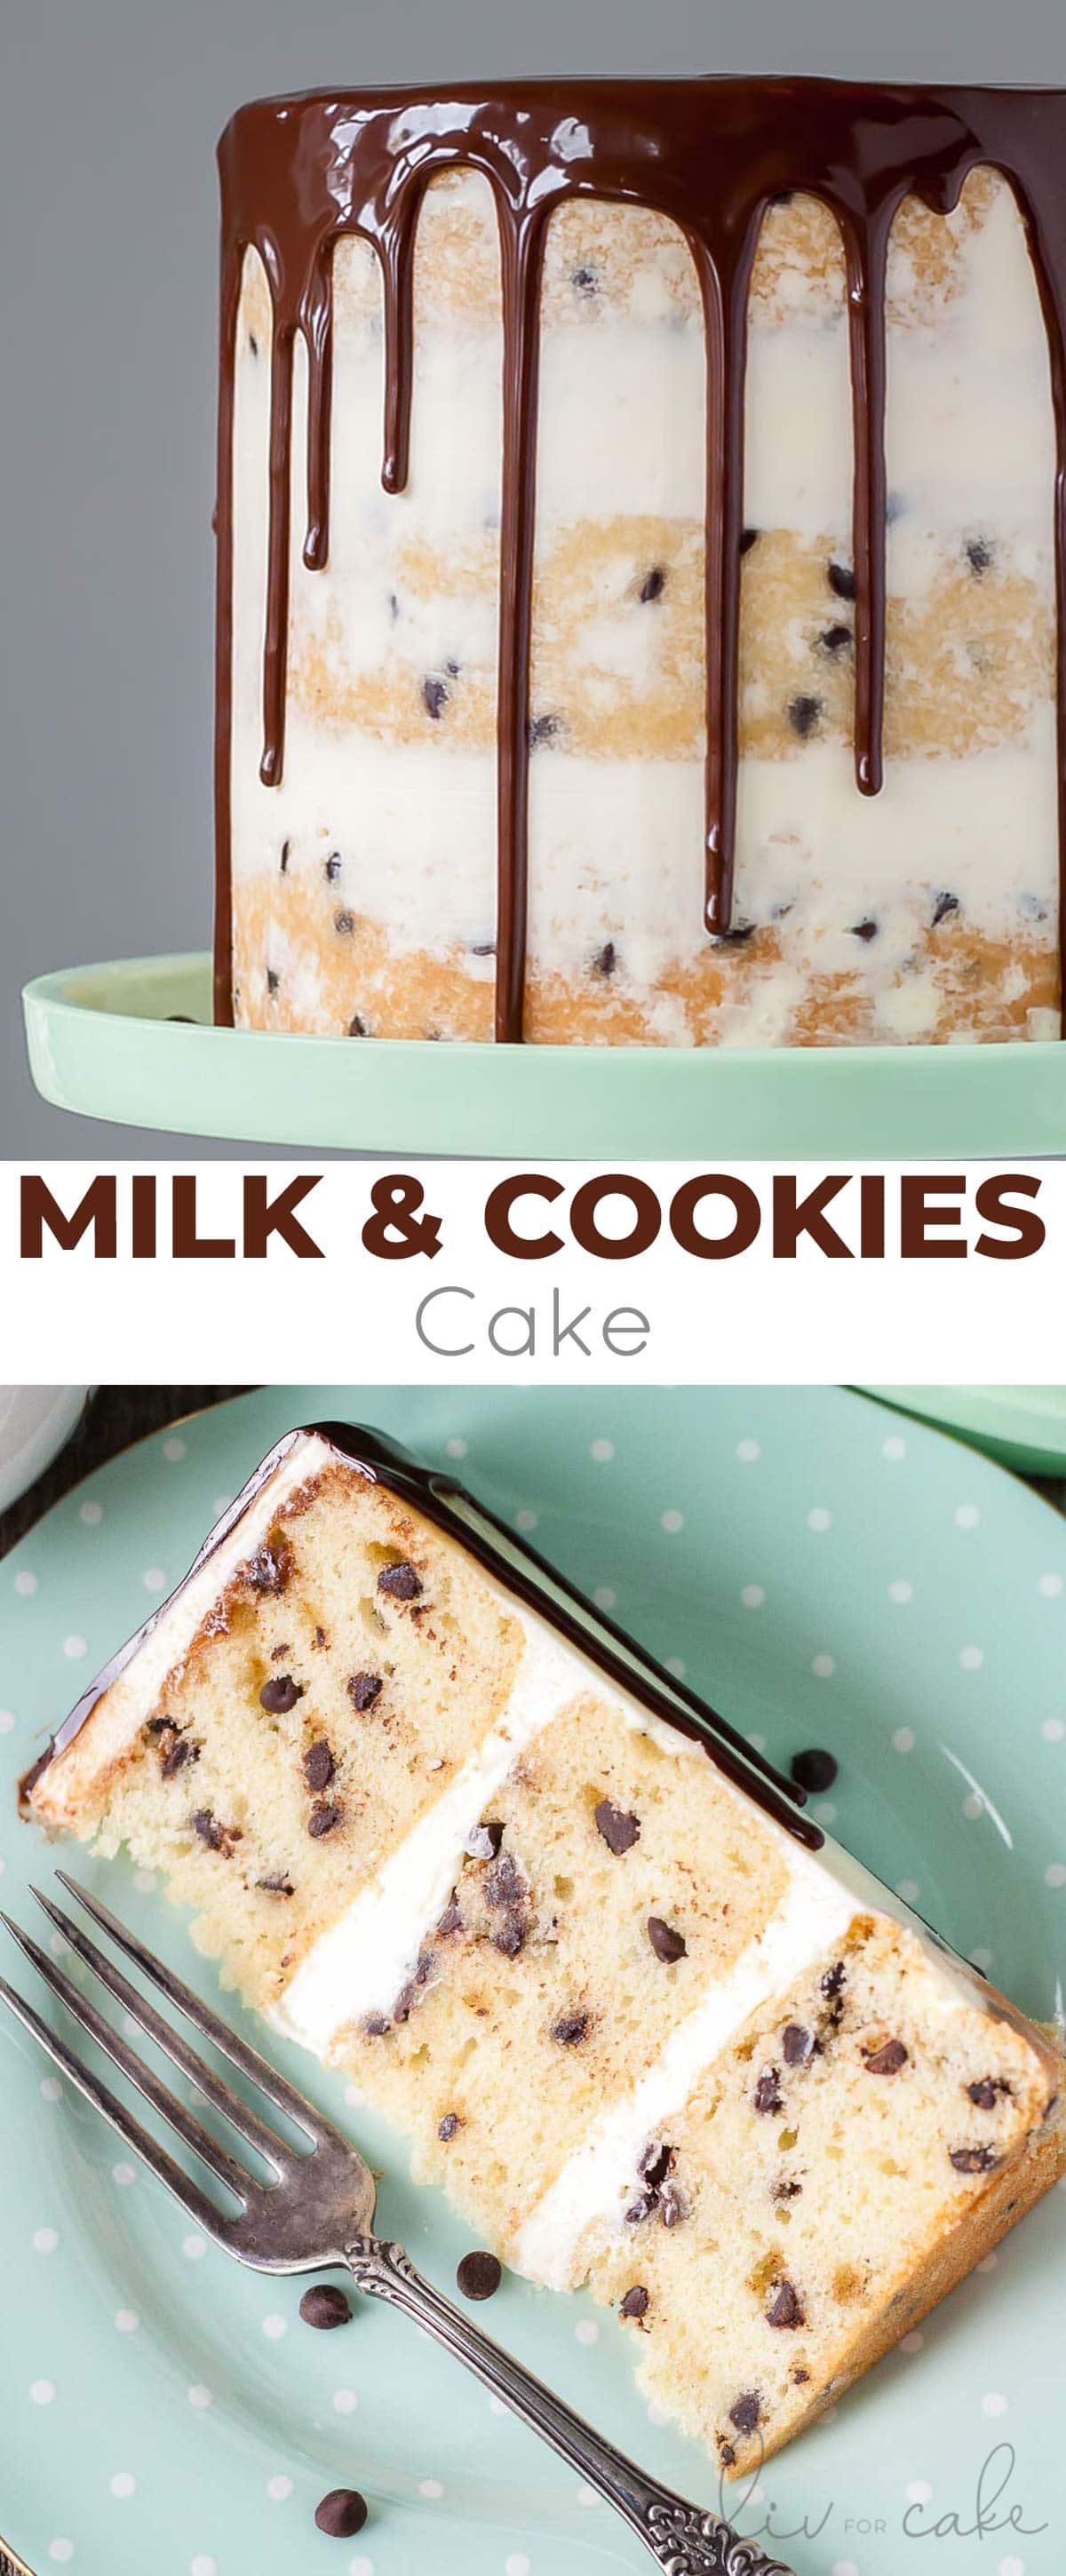 Milk & Cookies Cake collage